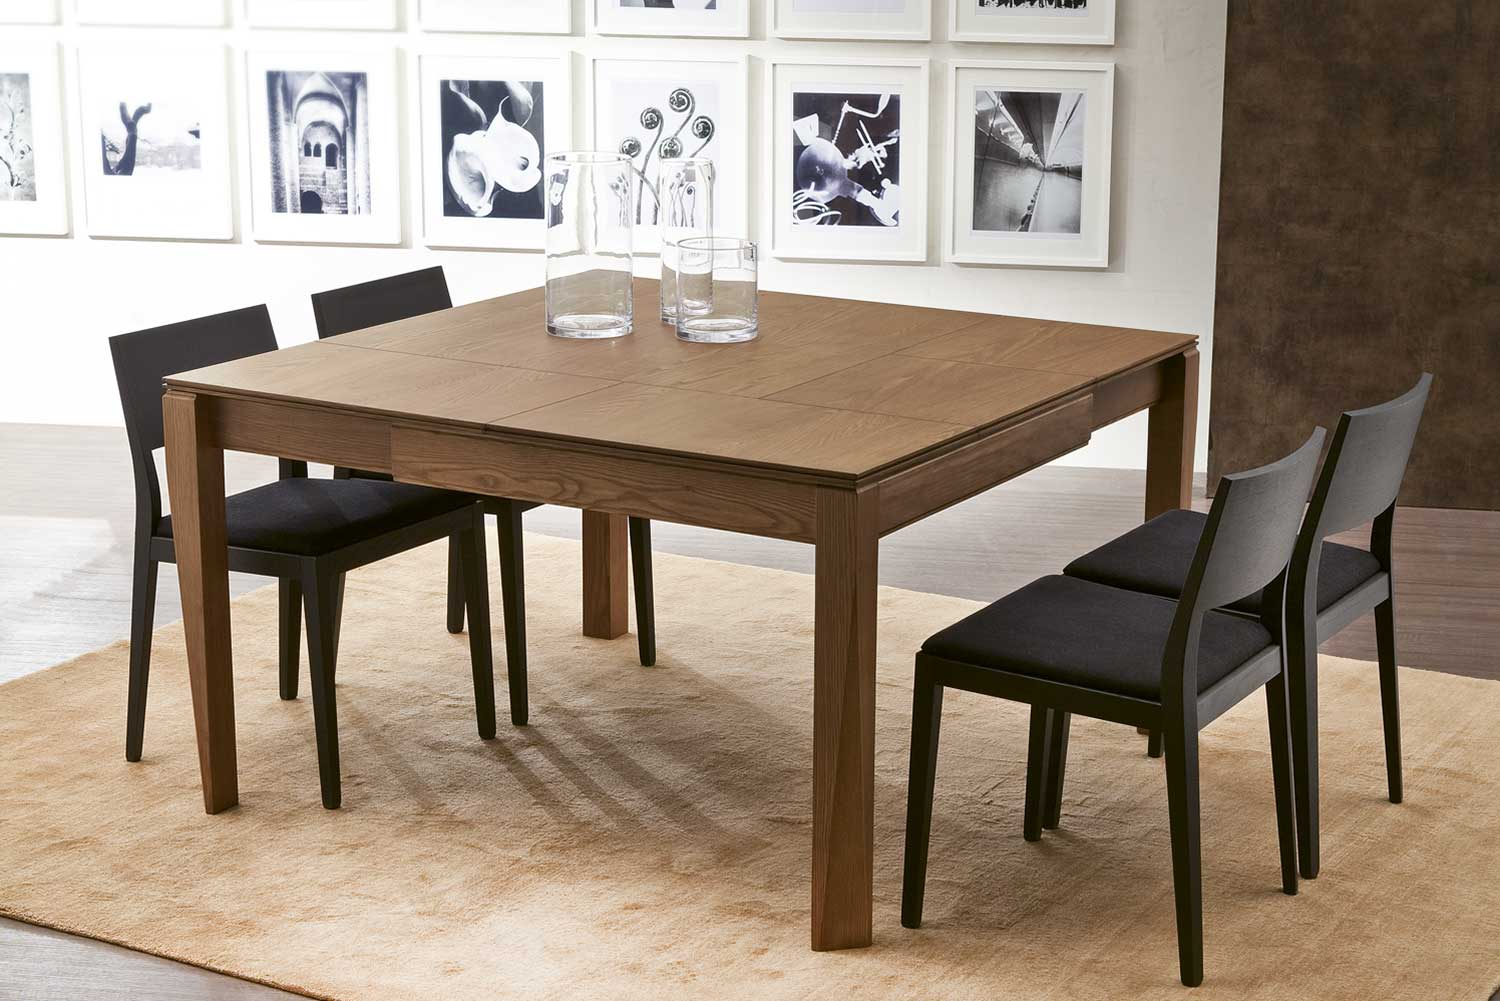 plurimo square transformable table